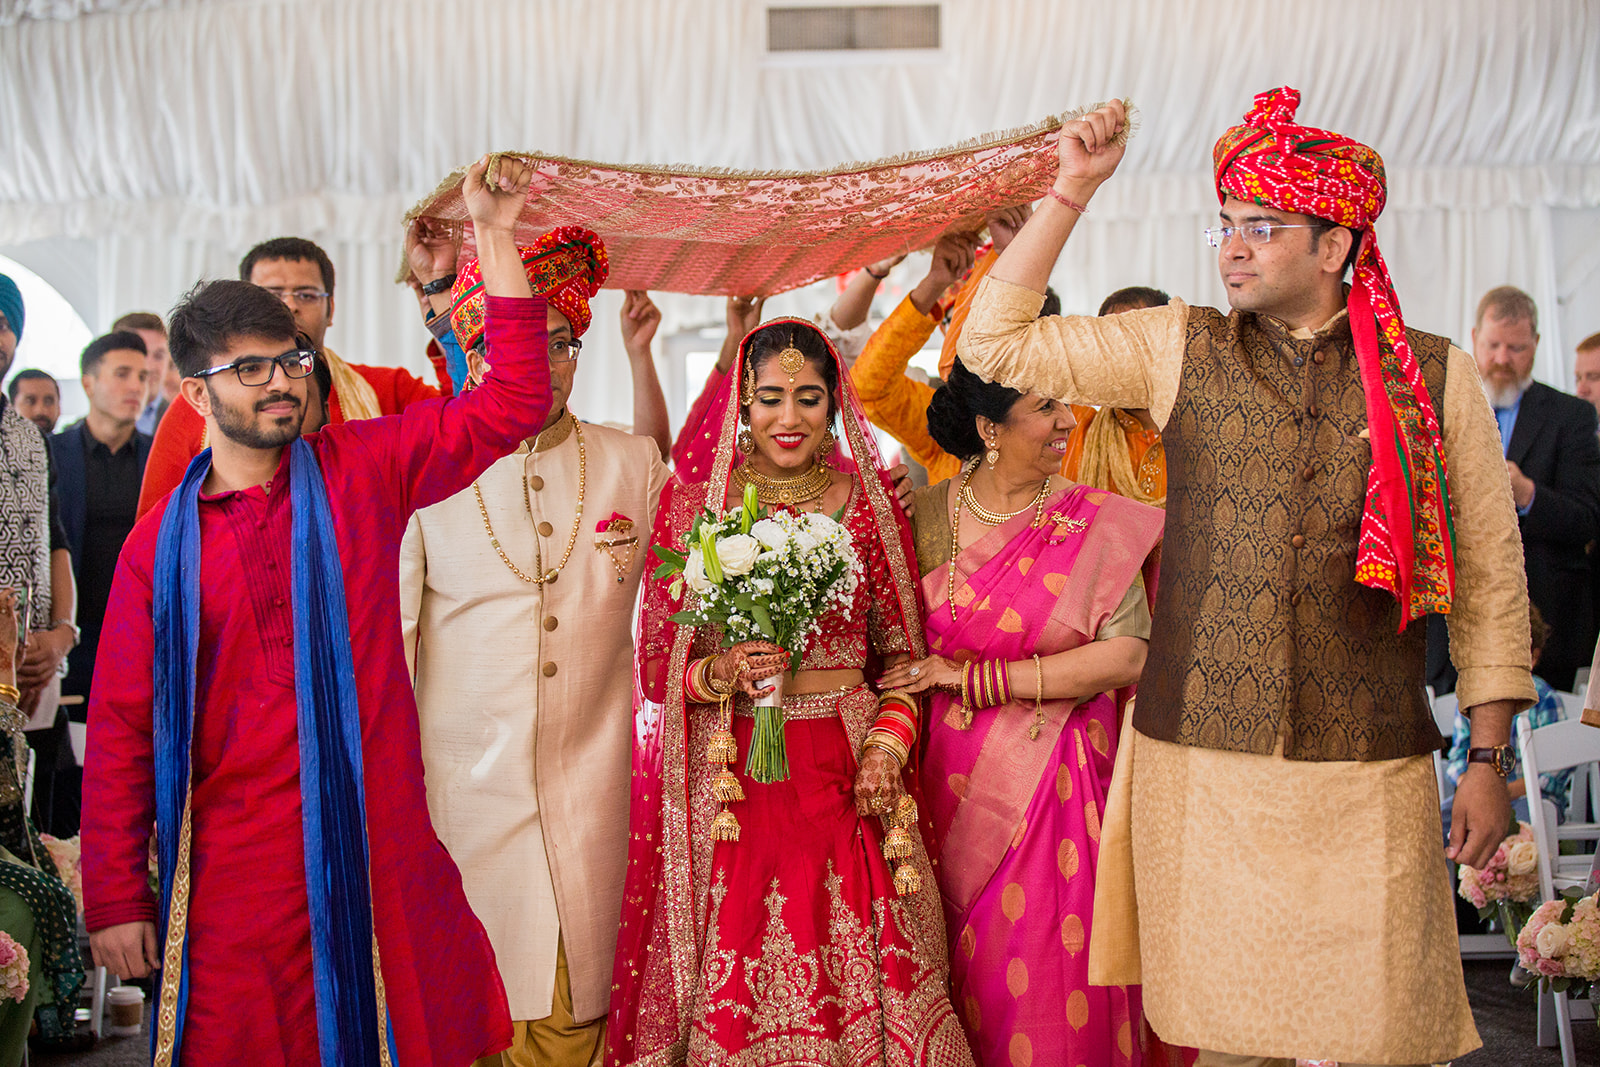 Le Cape Weddings - Sumeet and Chavi - Ceremony - Additions -15.jpg